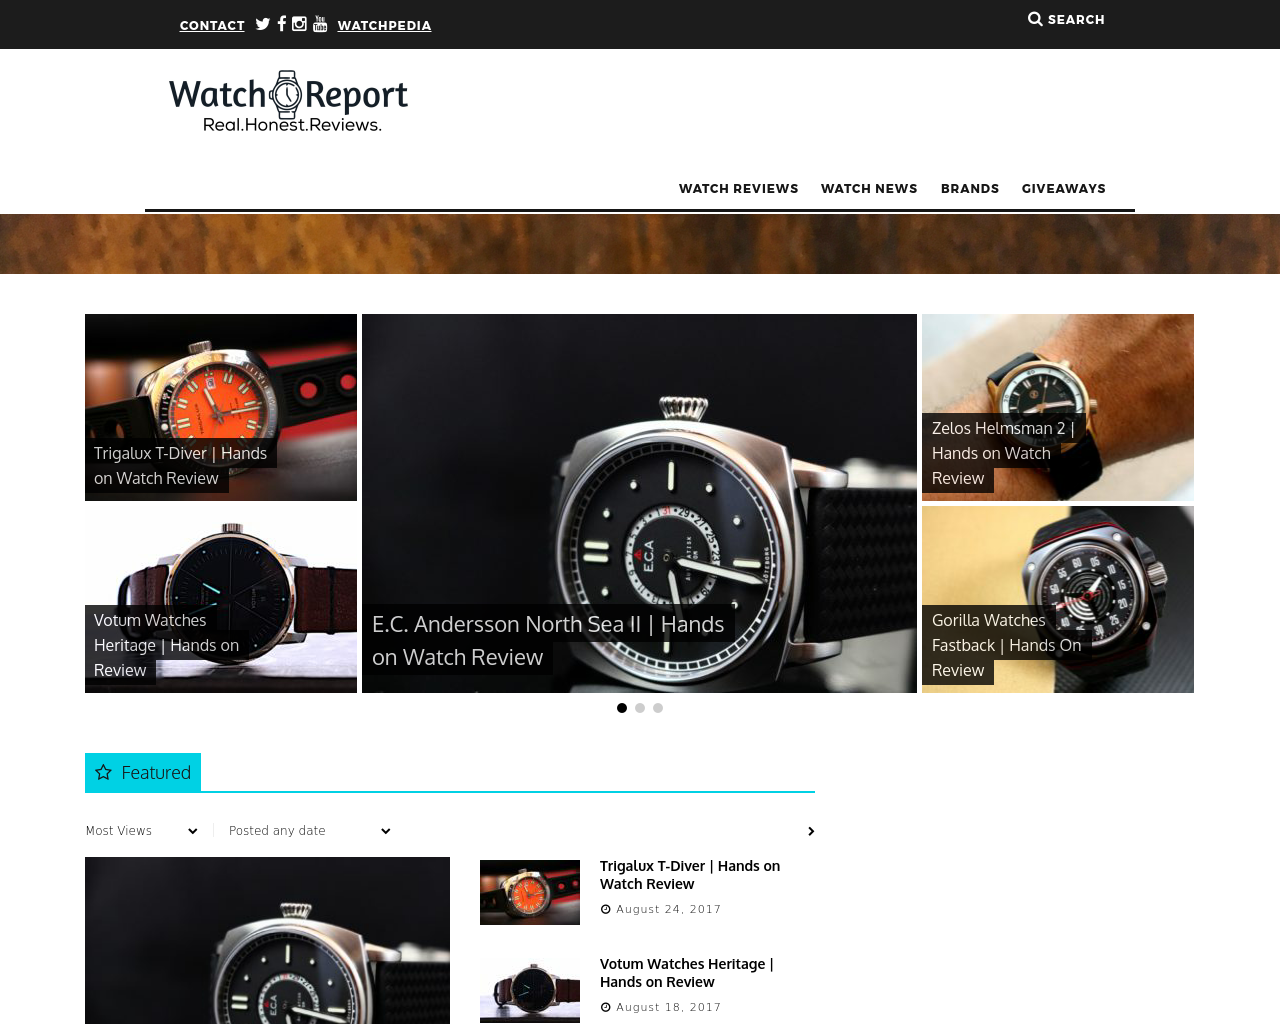 Watch-Report-Advertising-Reviews-Pricing